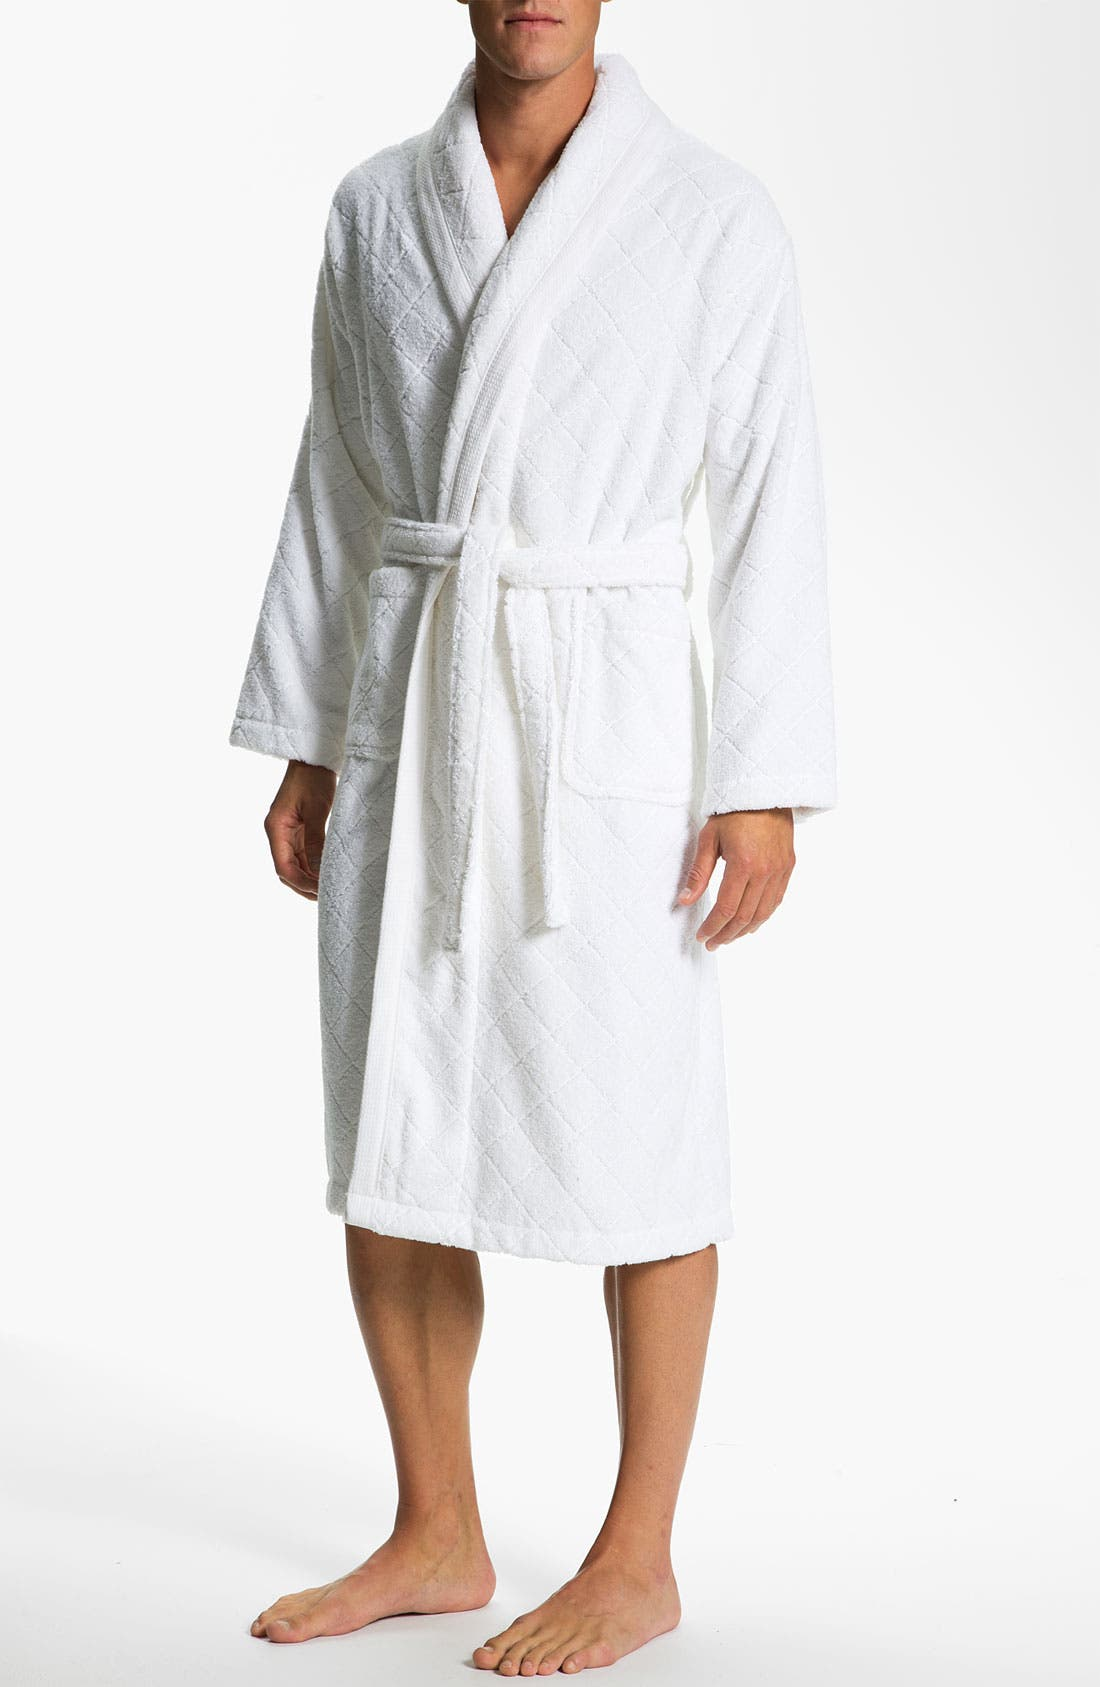 Alternate Image 1 Selected - Daniel Buchler 'Hydro' Turkish Terry Cotton Robe